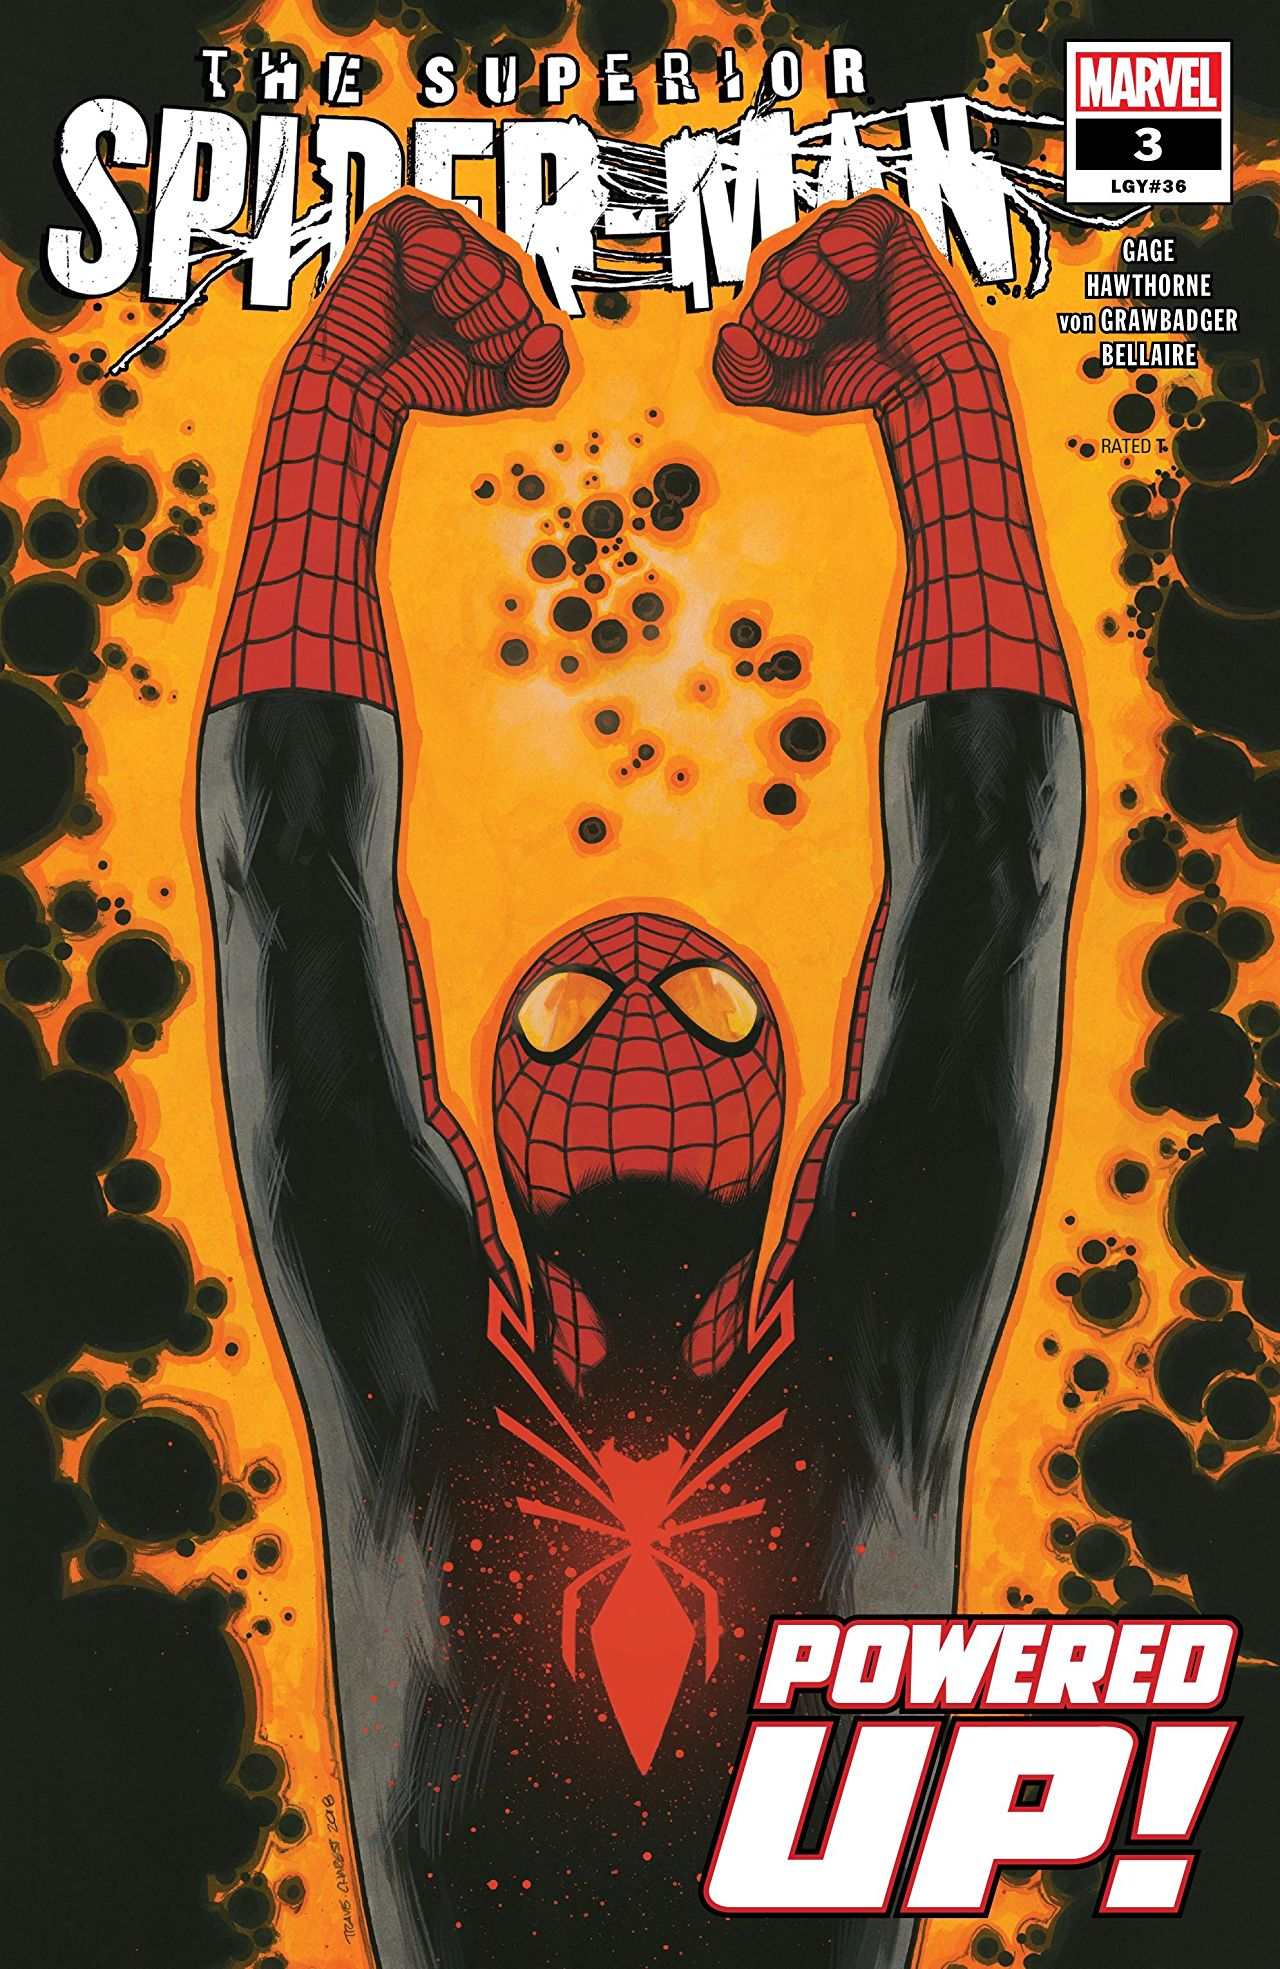 Superior Spider-Man (Vol. 2)  #3